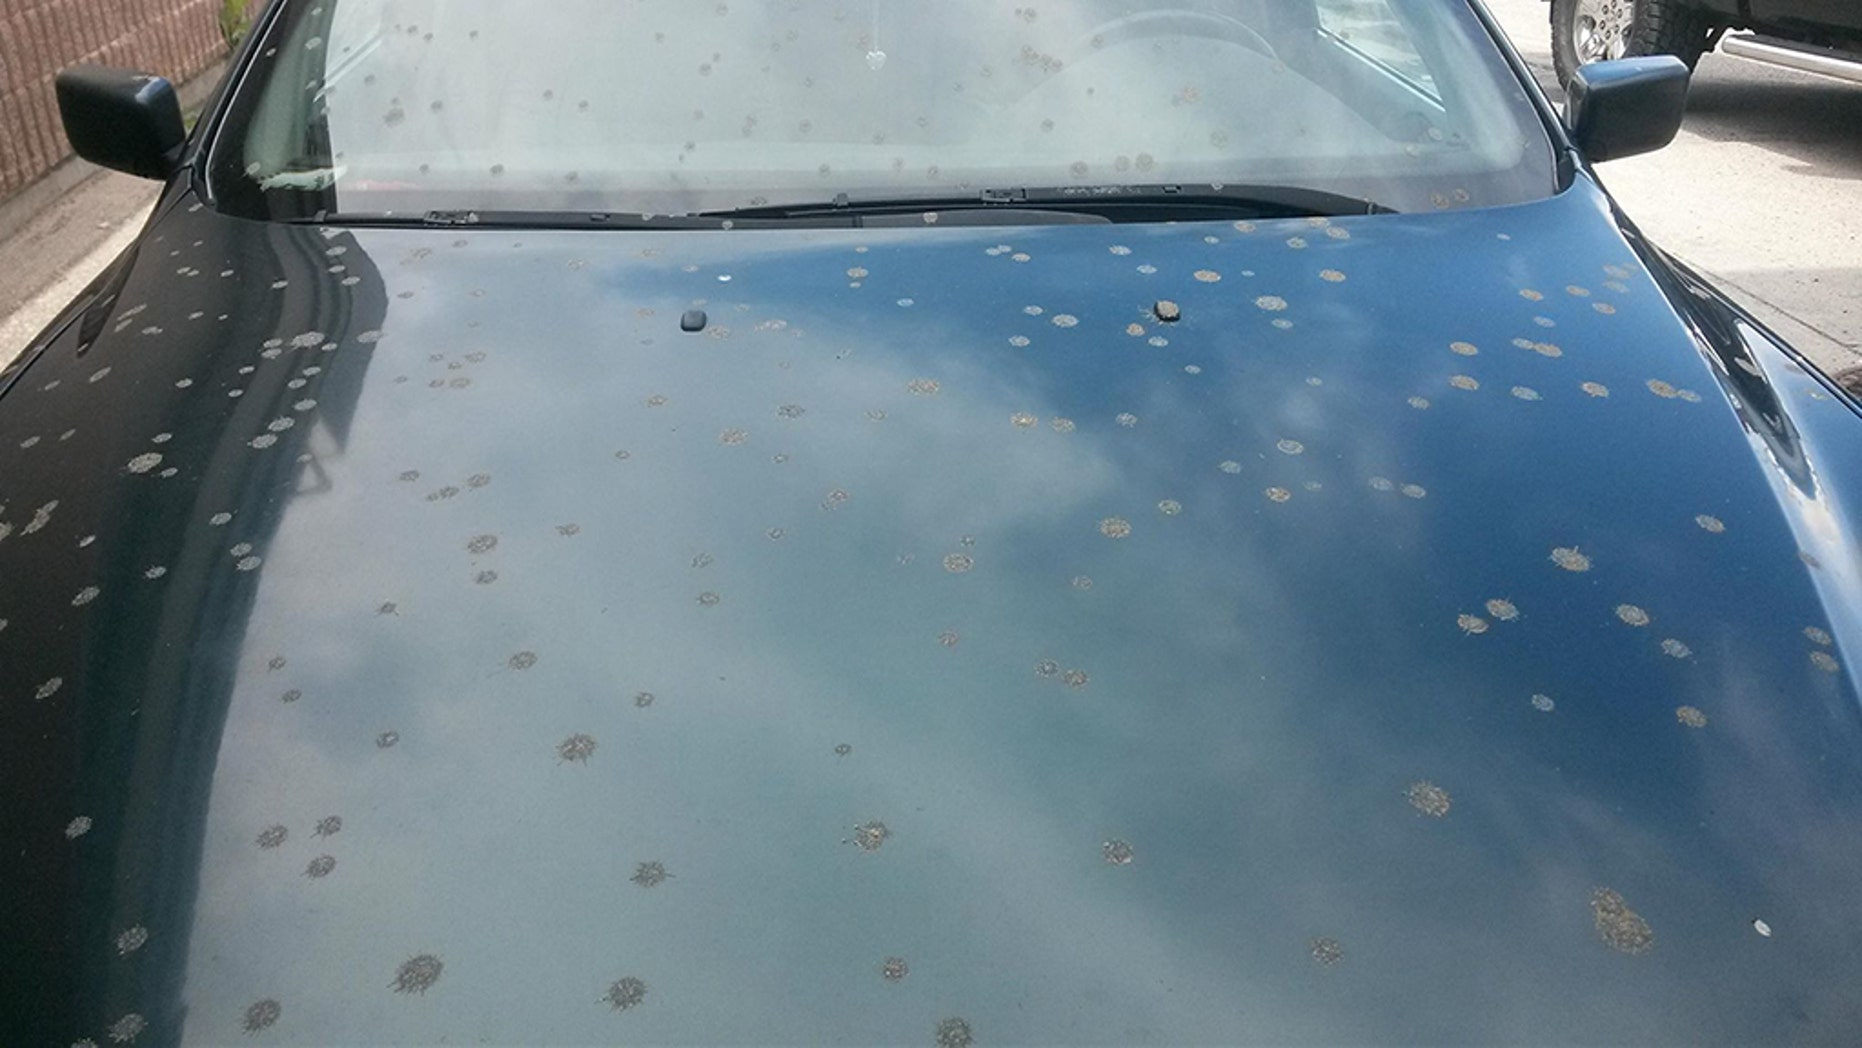 Residents of Kelowna, in British Columbia, claim their cars were covered in poop last month.